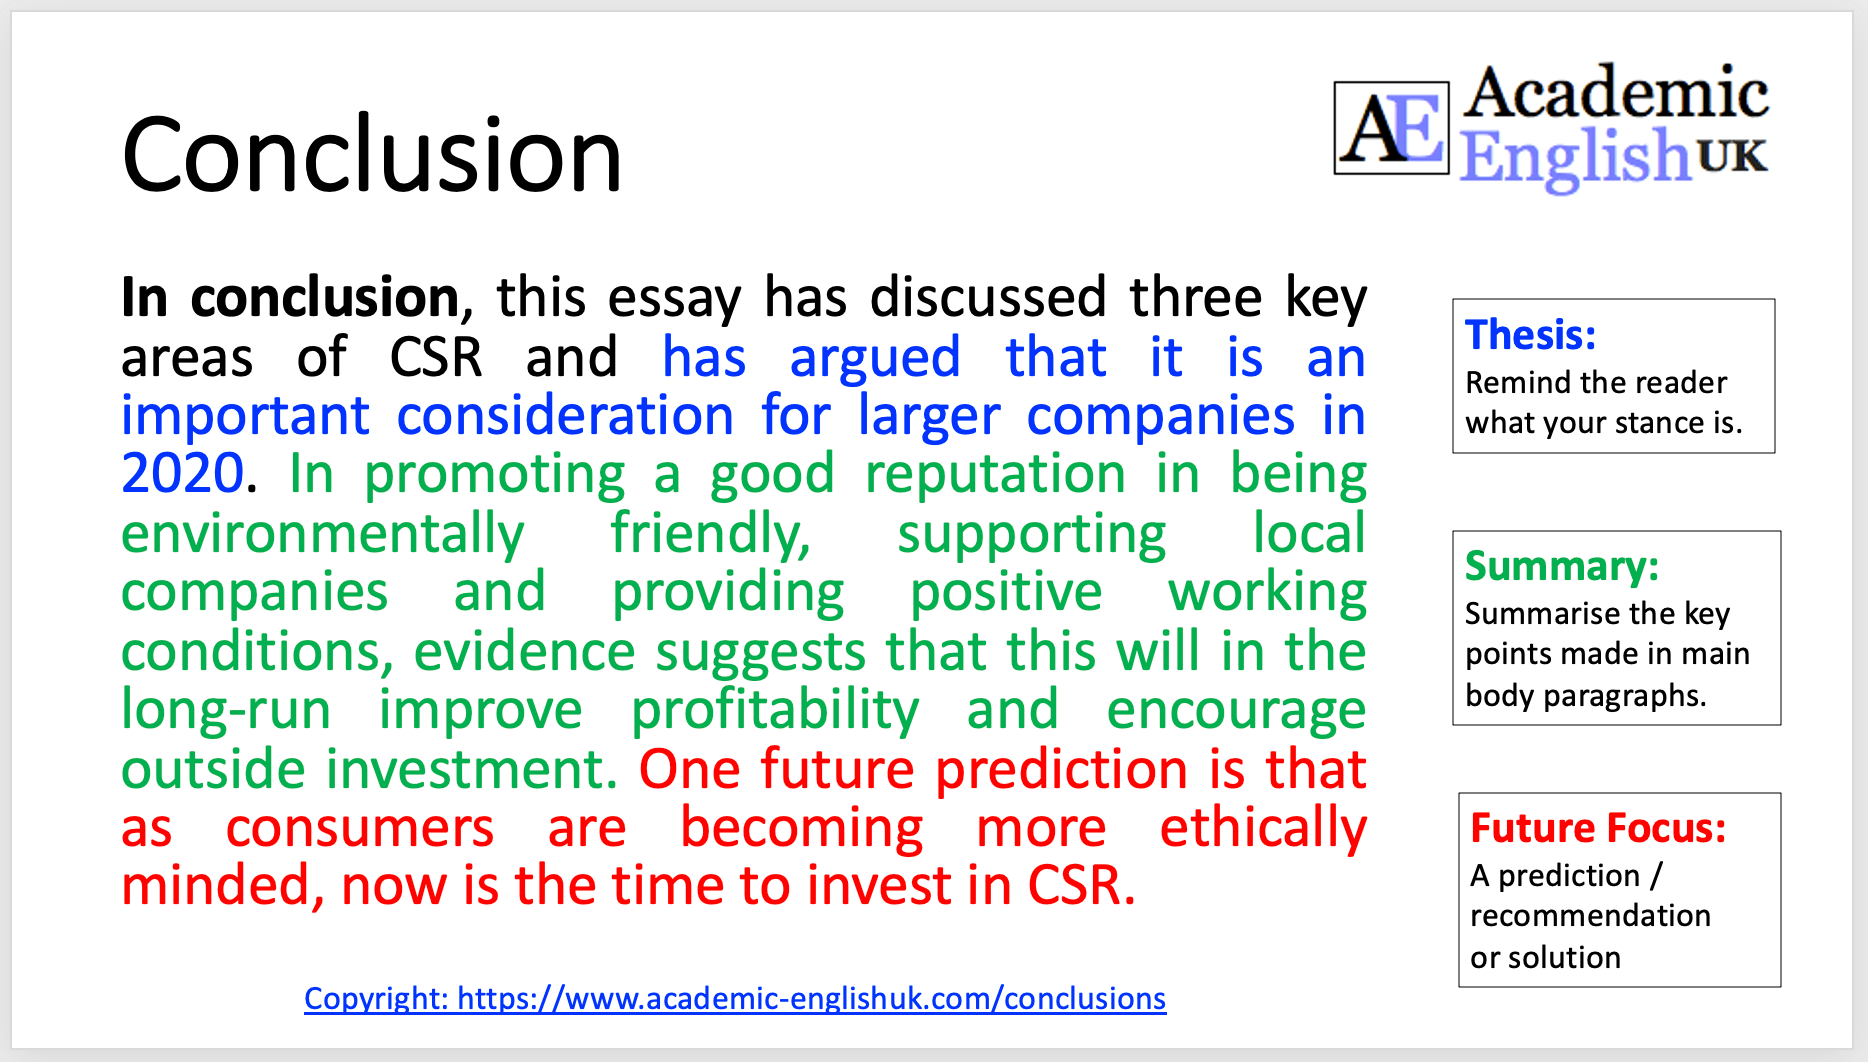 Academic Conclusion - How To Write An Academic Conclusion.